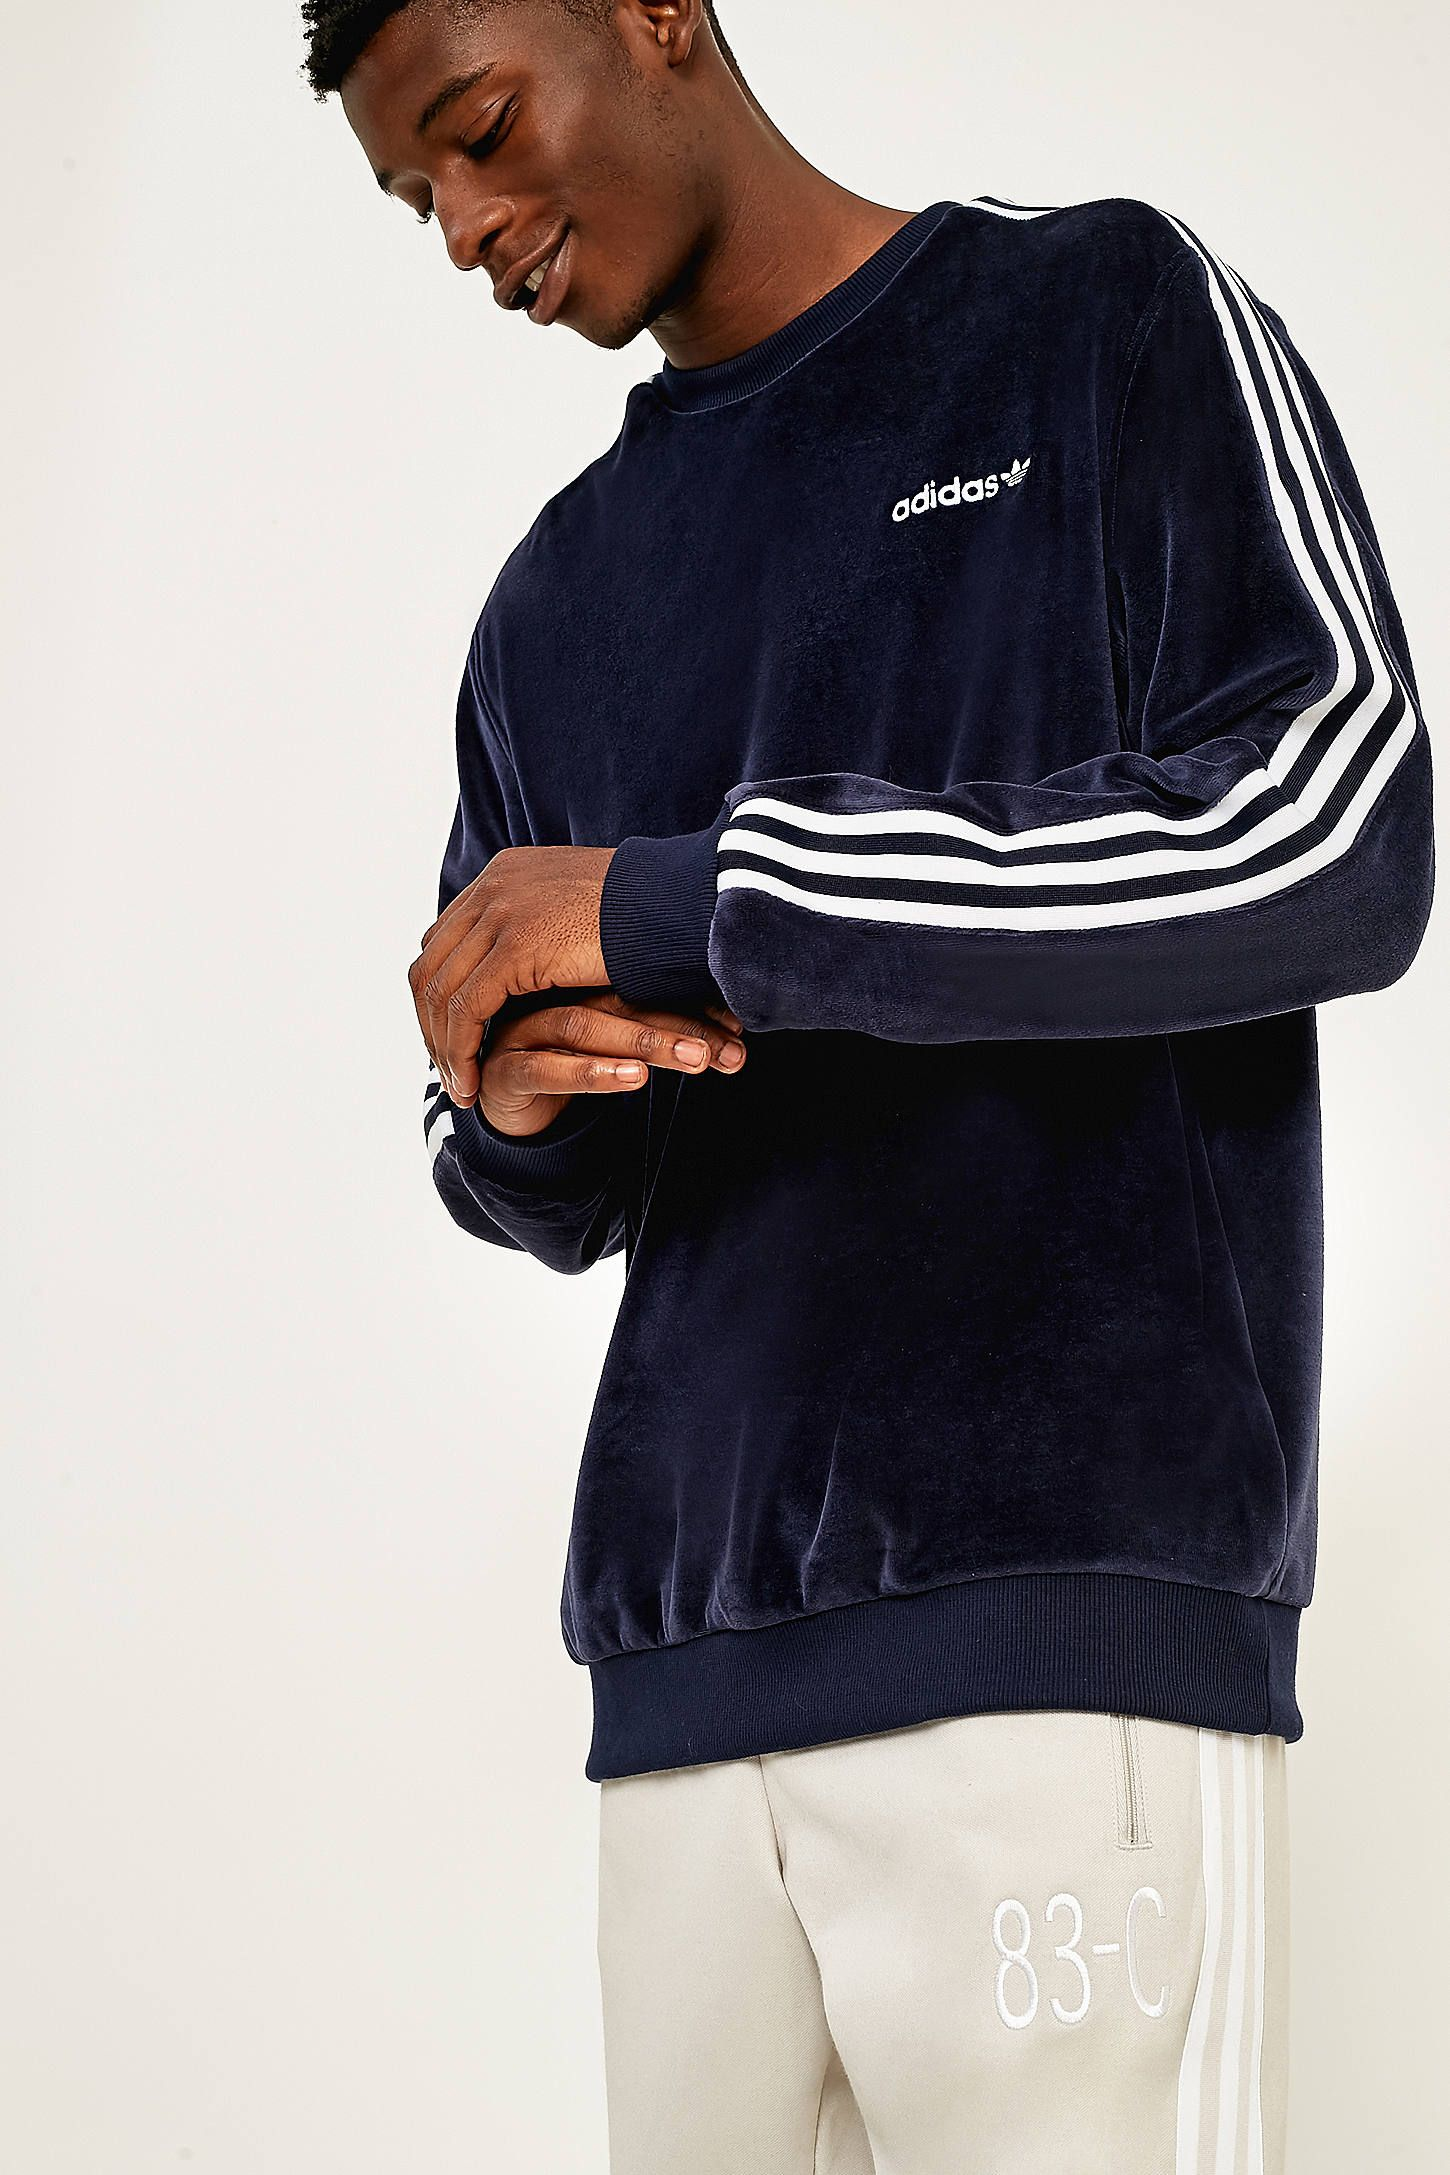 adidas originals velour crew sweatshirt